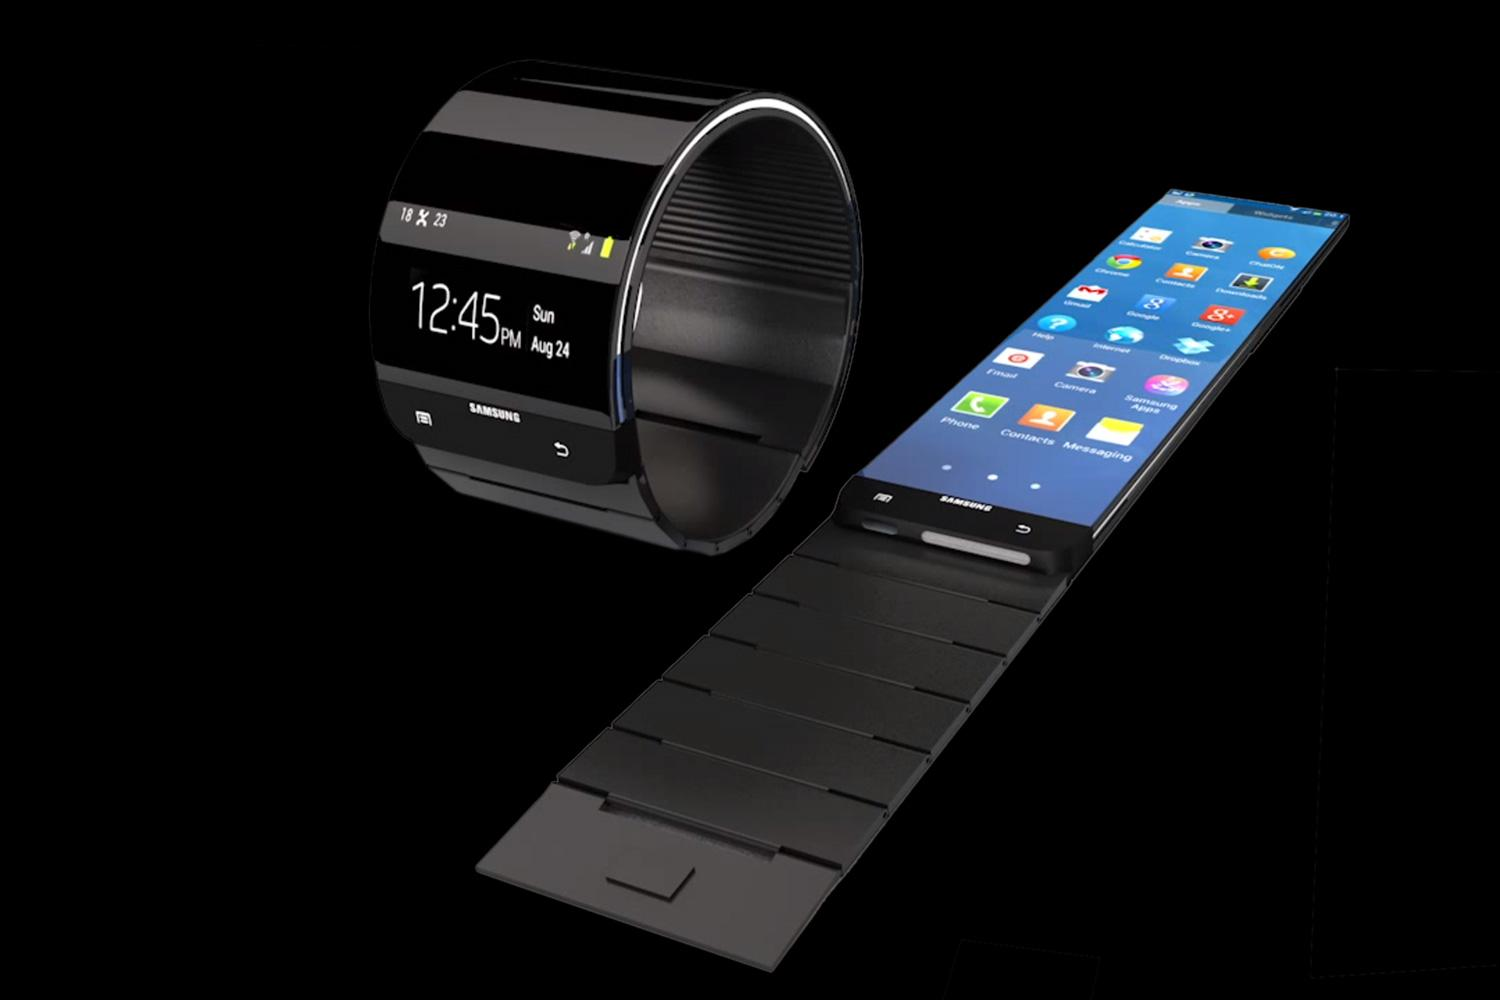 galaxy gear smartwatch rumor roundup digital trends. Black Bedroom Furniture Sets. Home Design Ideas